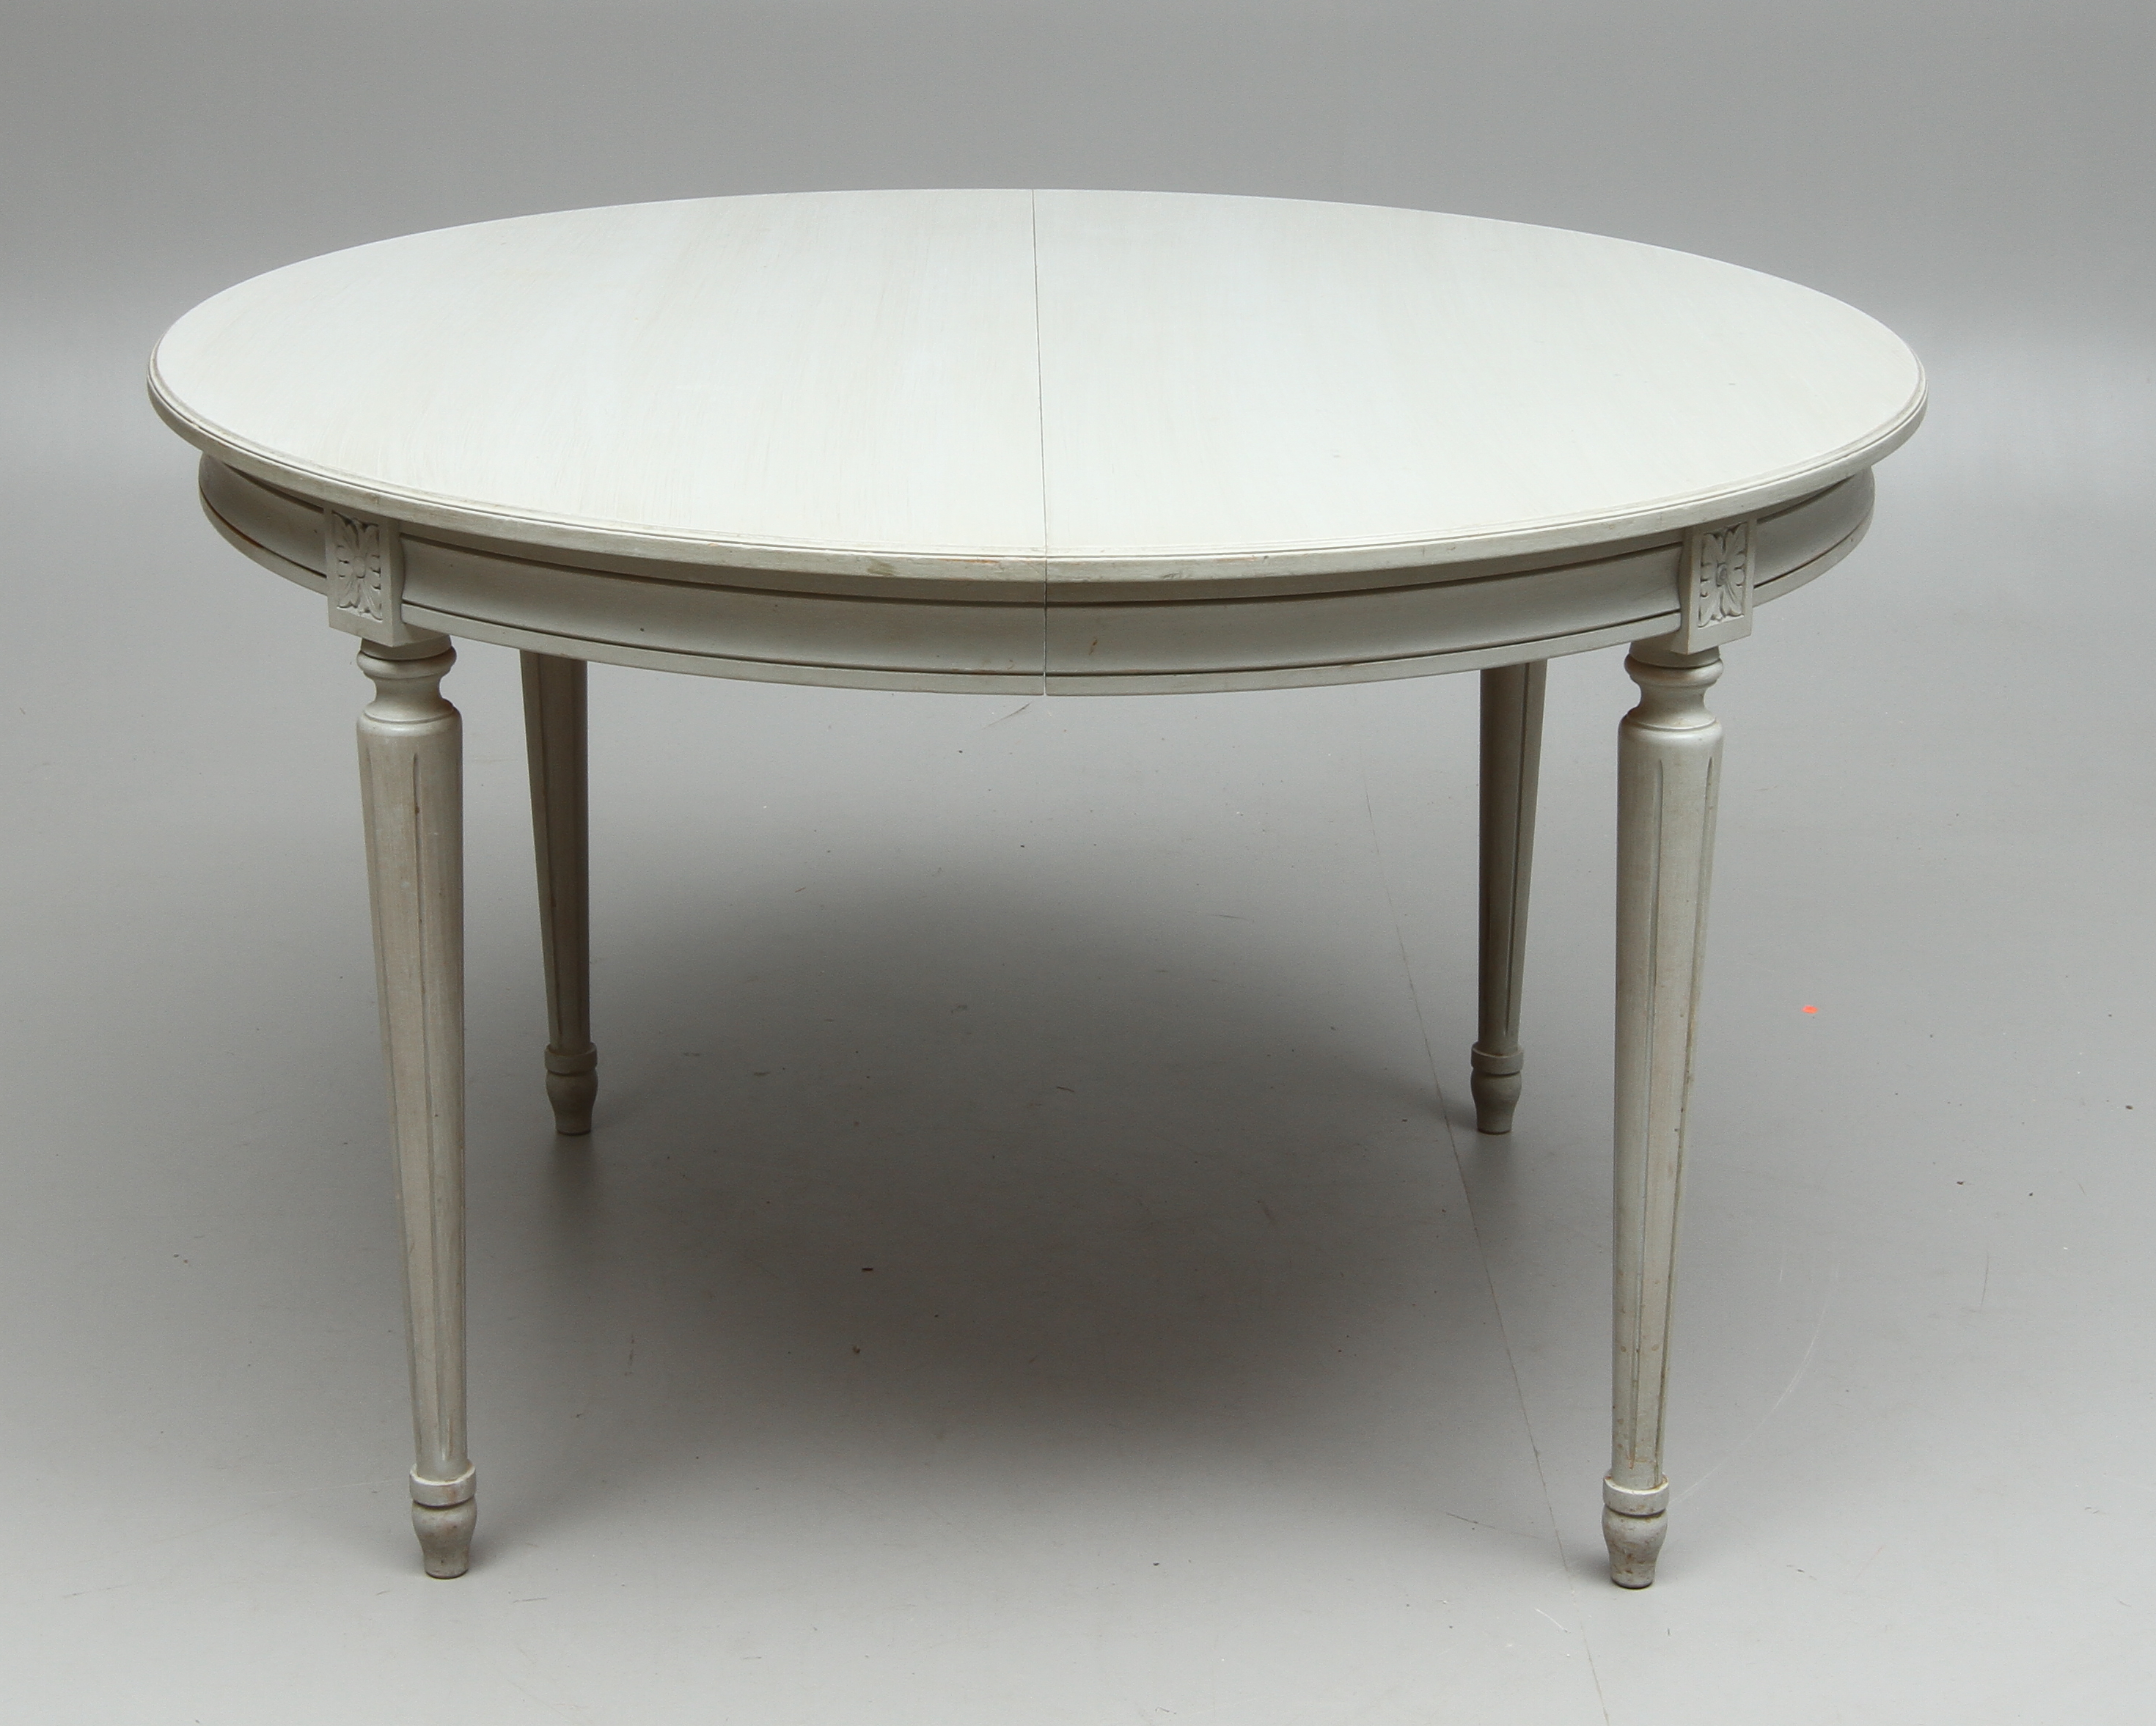 FATBOARD, Gustavian style, marked SOL, 19 2000s. Furniture